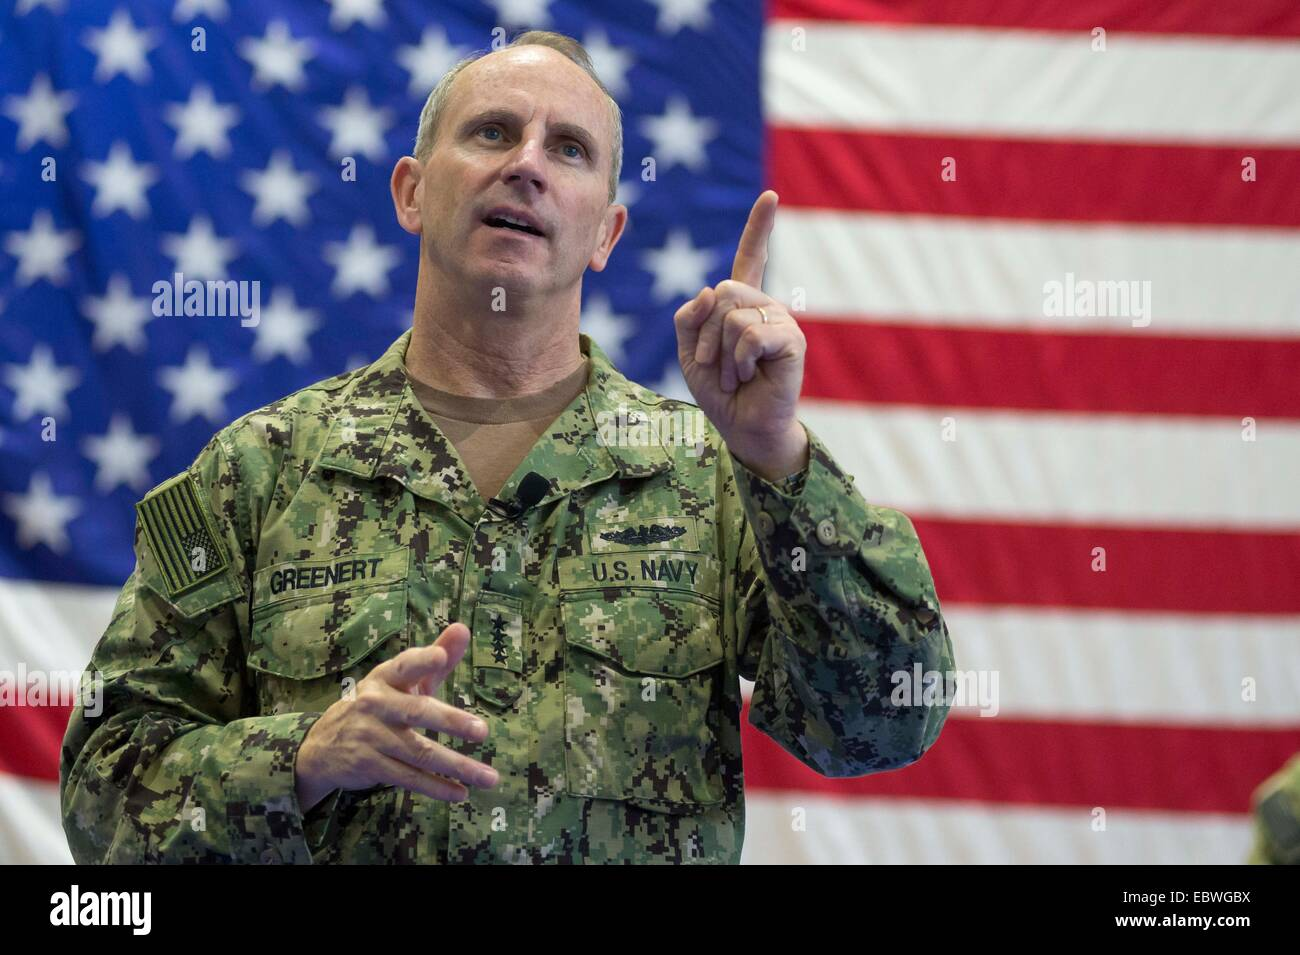 US Chief of Naval Operations Adm. Jonathan Greenert during an all-hands call with service members and civilians - Stock Image